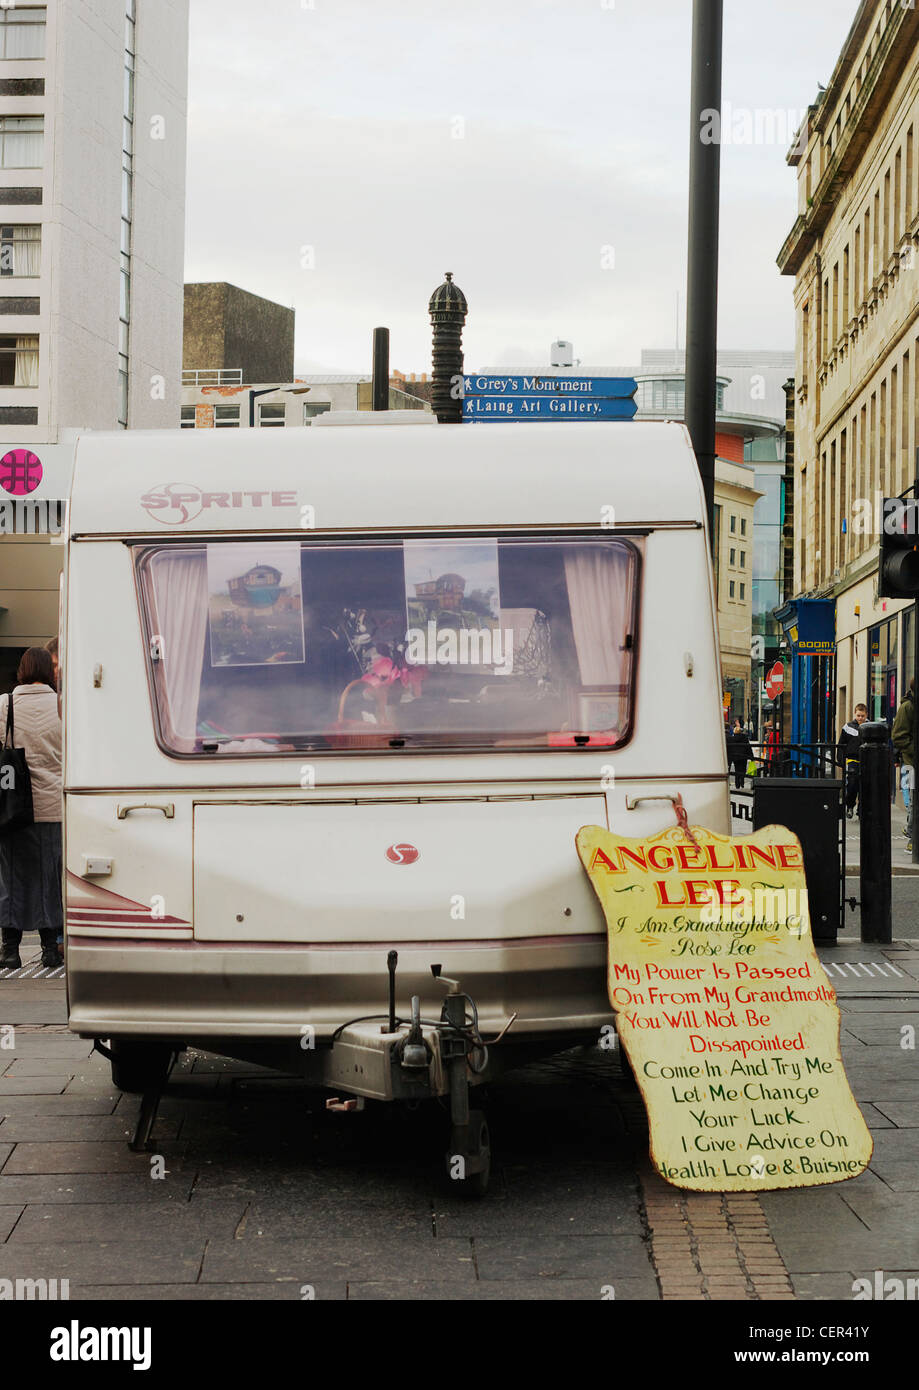 A fortune tellers caravan with a sign leaning against it in the city. - Stock Image